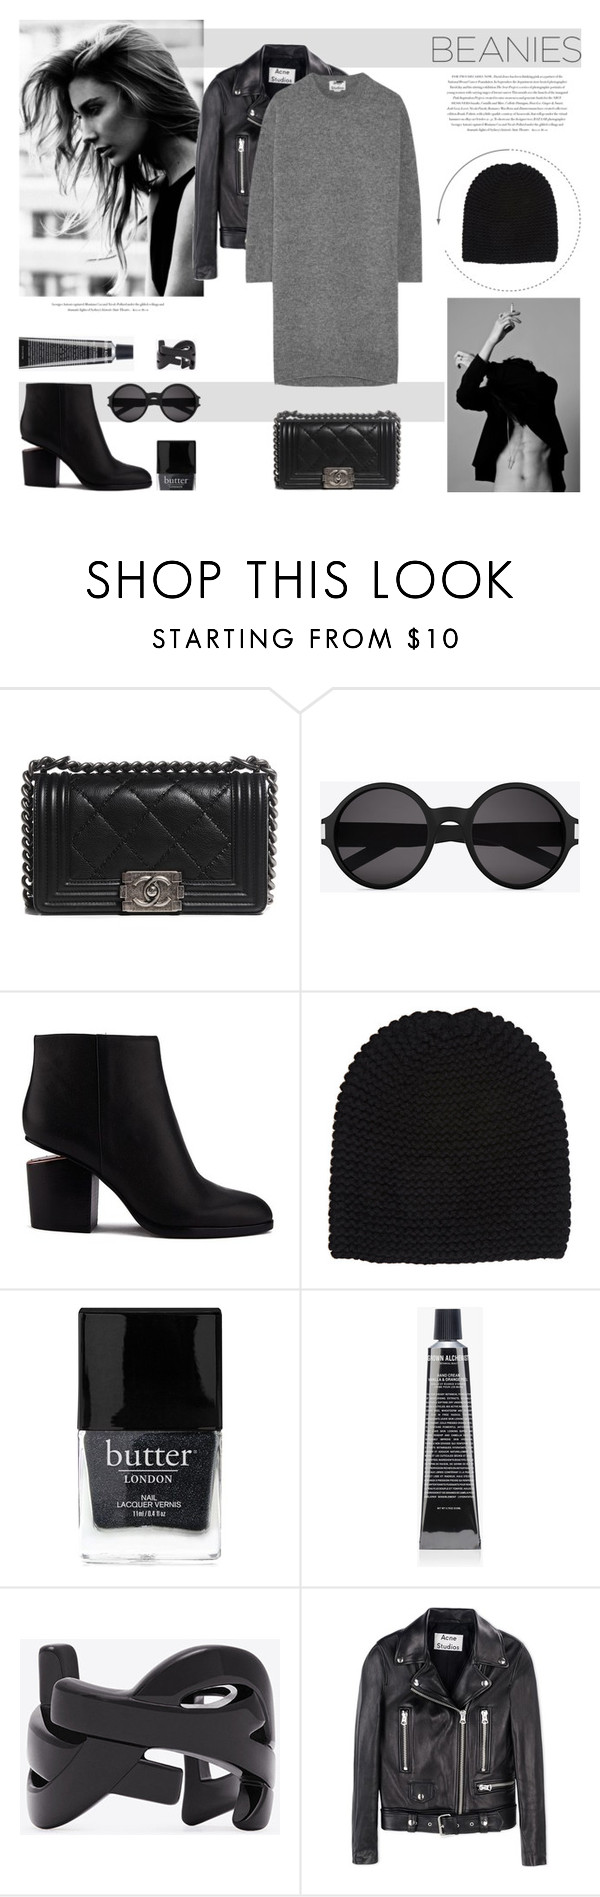 """""""Beanielove"""" by nmkratz ❤ liked on Polyvore featuring Chanel, Yves Saint Laurent, Alexander Wang, Wommelsdorff, Butter London, Grown Alchemist, Envi and Acne Studios"""